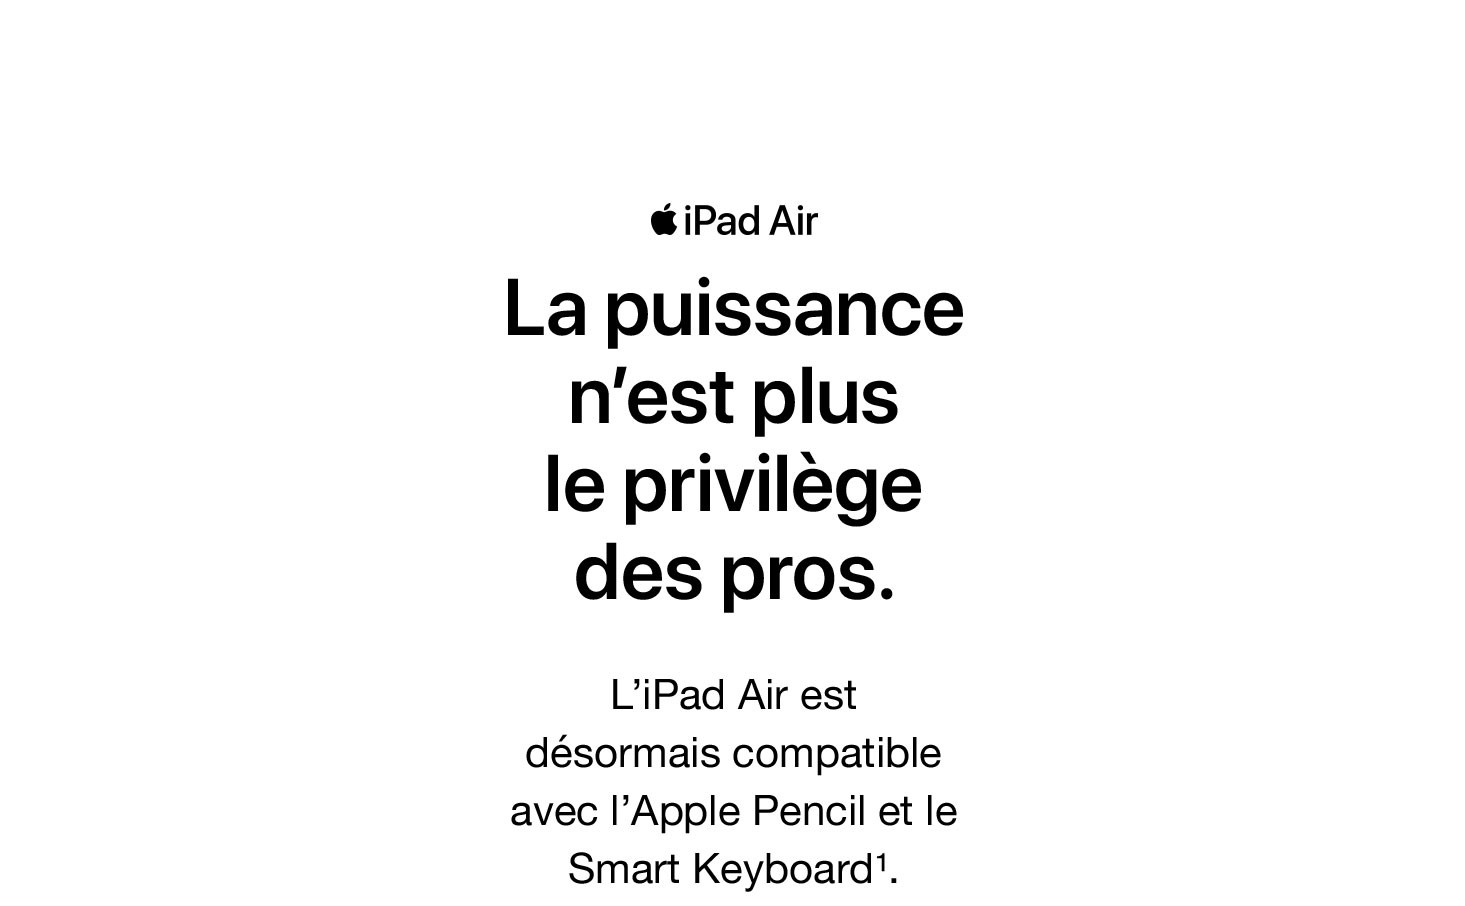 Productpage---iPad-Air-2019-fr-mobile_02.jpg